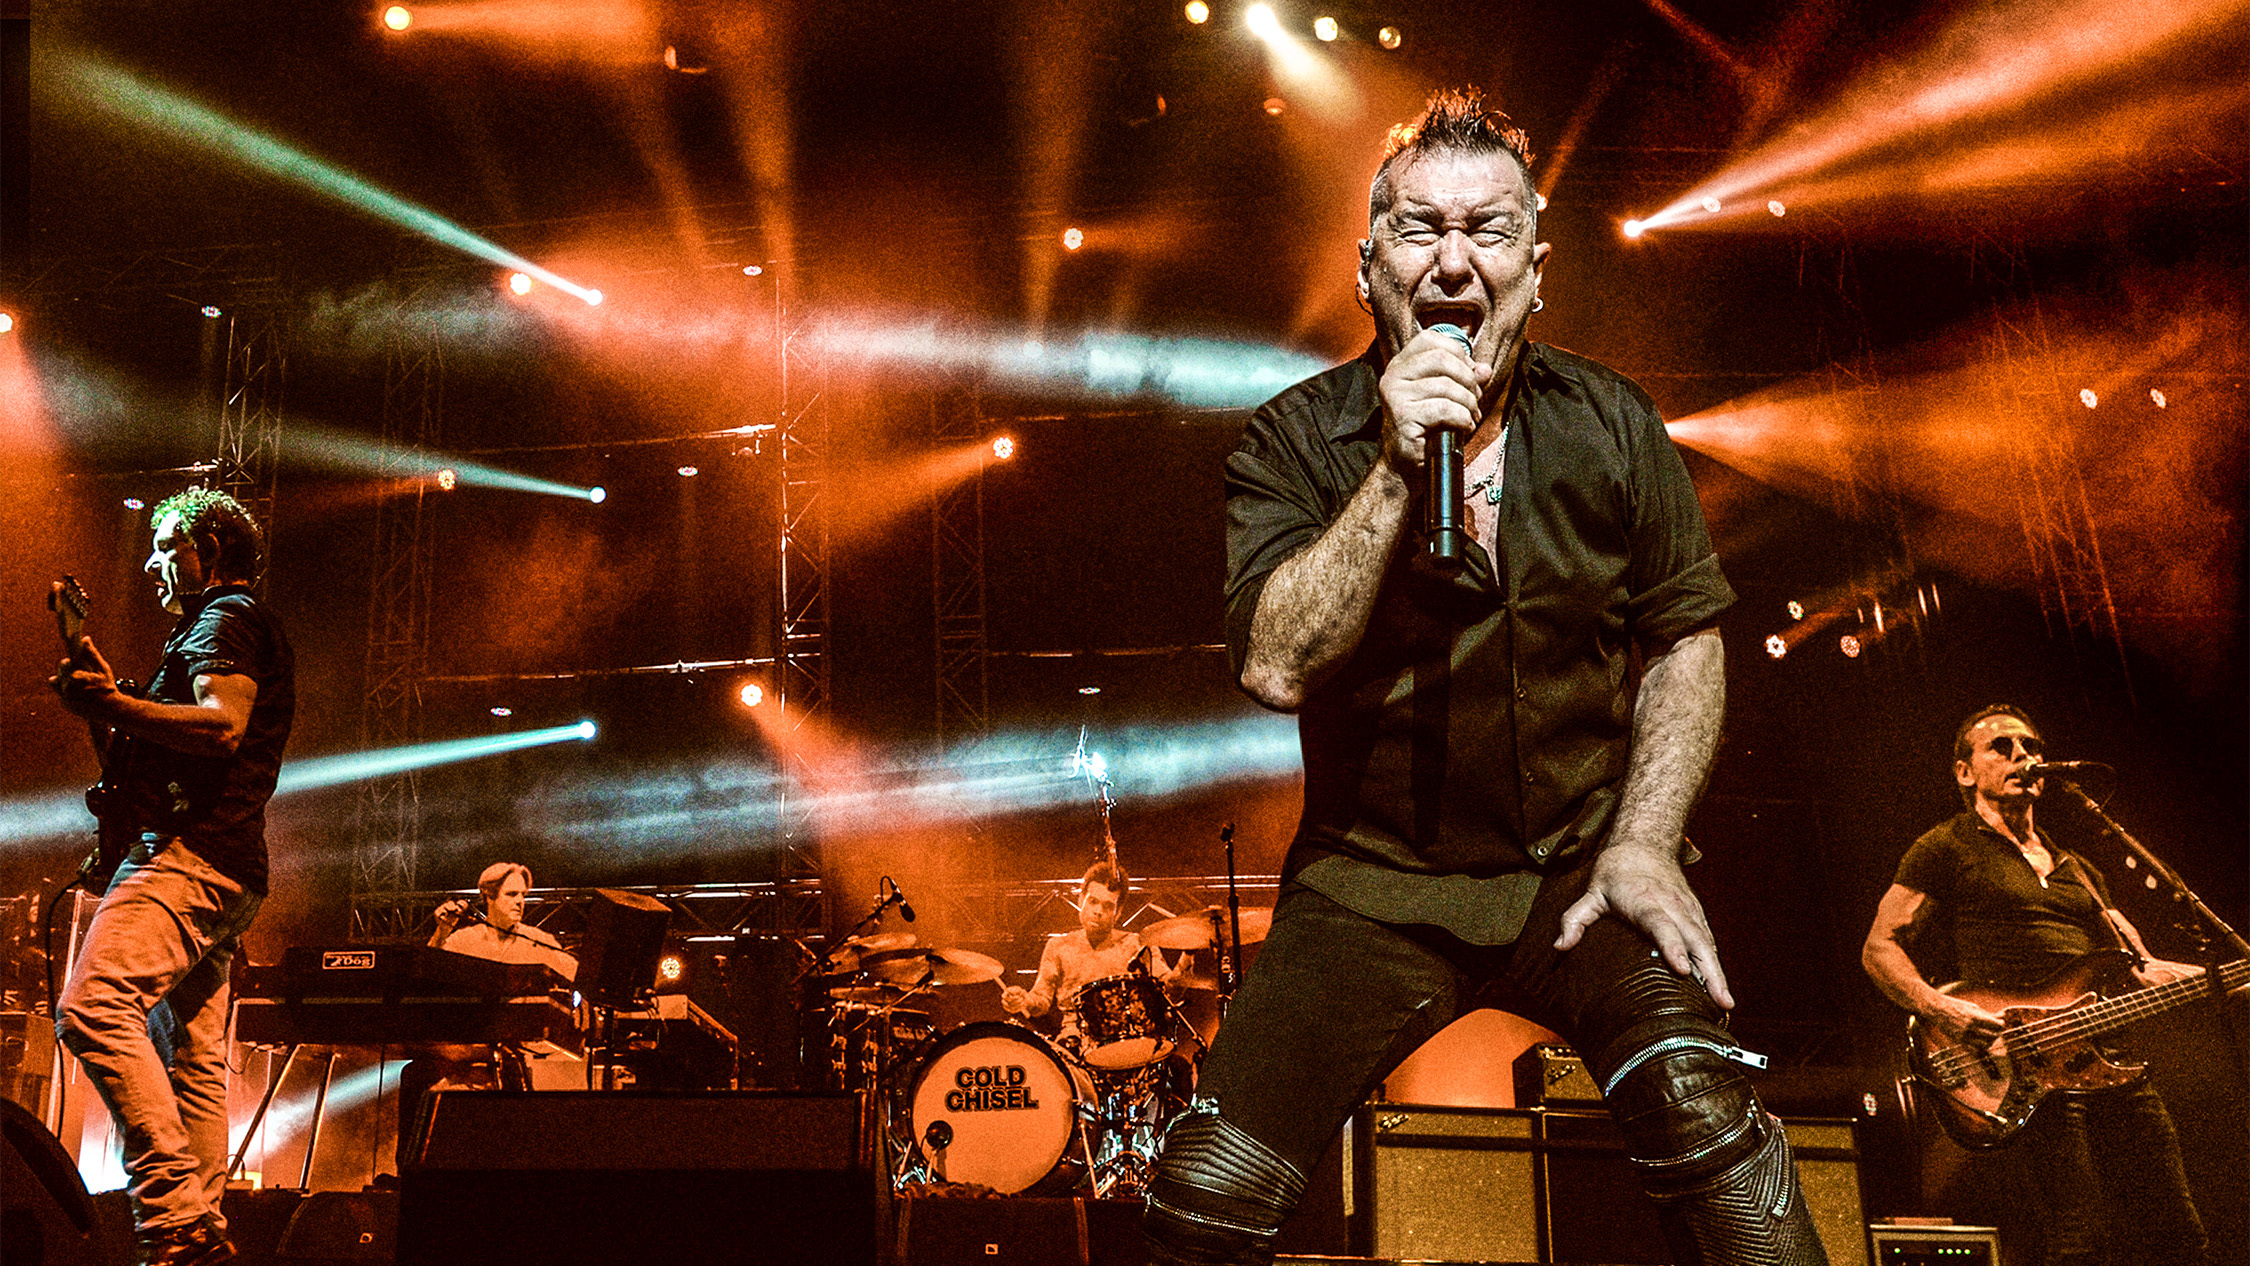 Cold Chisel 2019 supplied